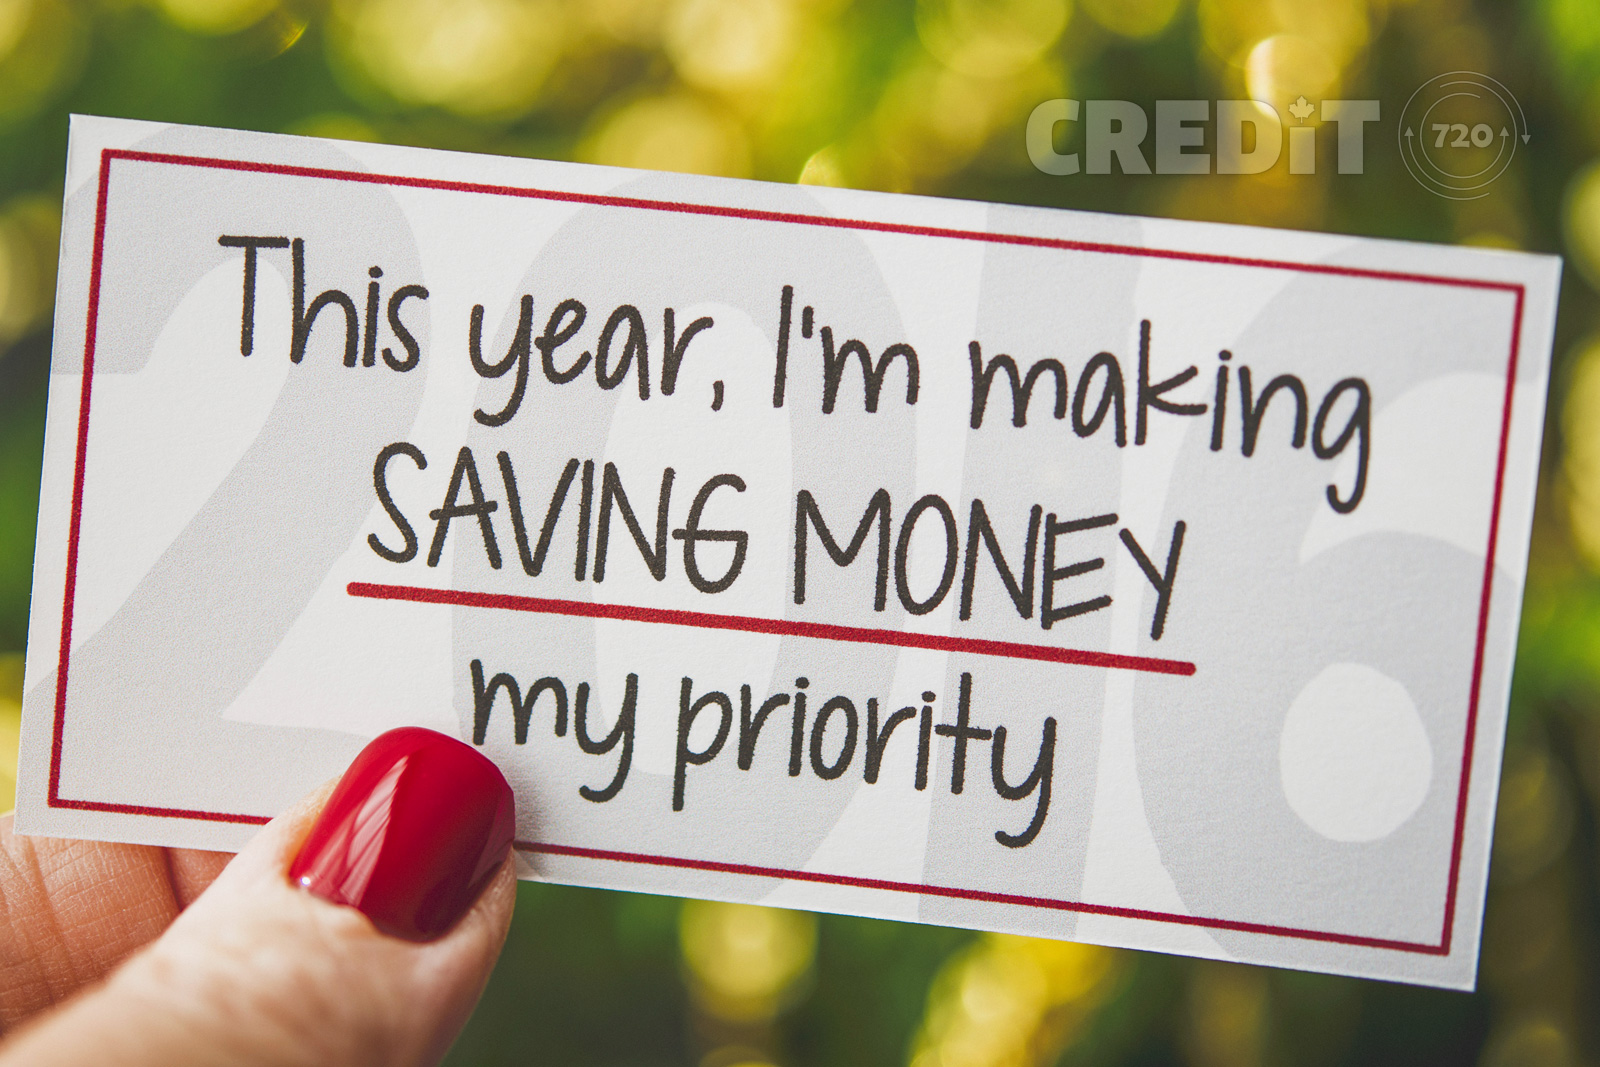 Saving Money - Credit720